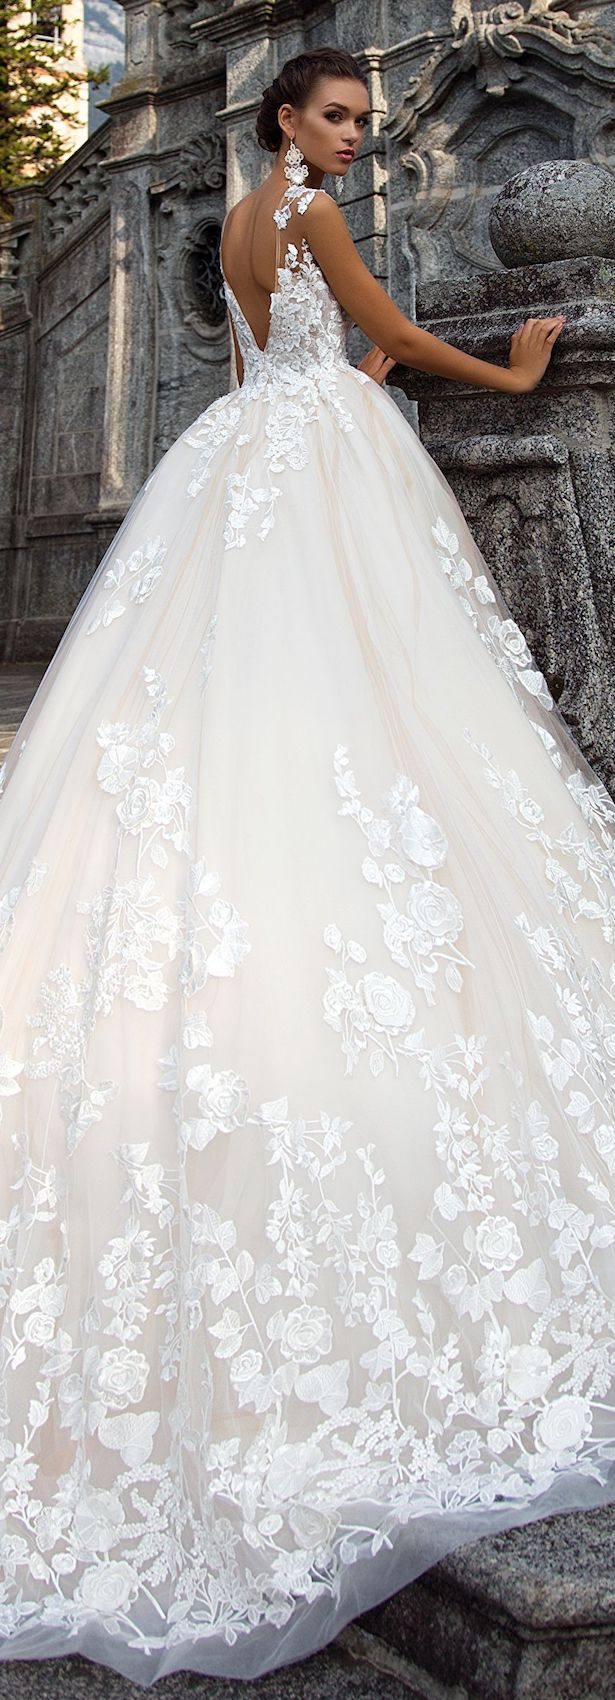 Most Beautiful Wedding Dresses 2017 86 Awesome  Wedding Dress by